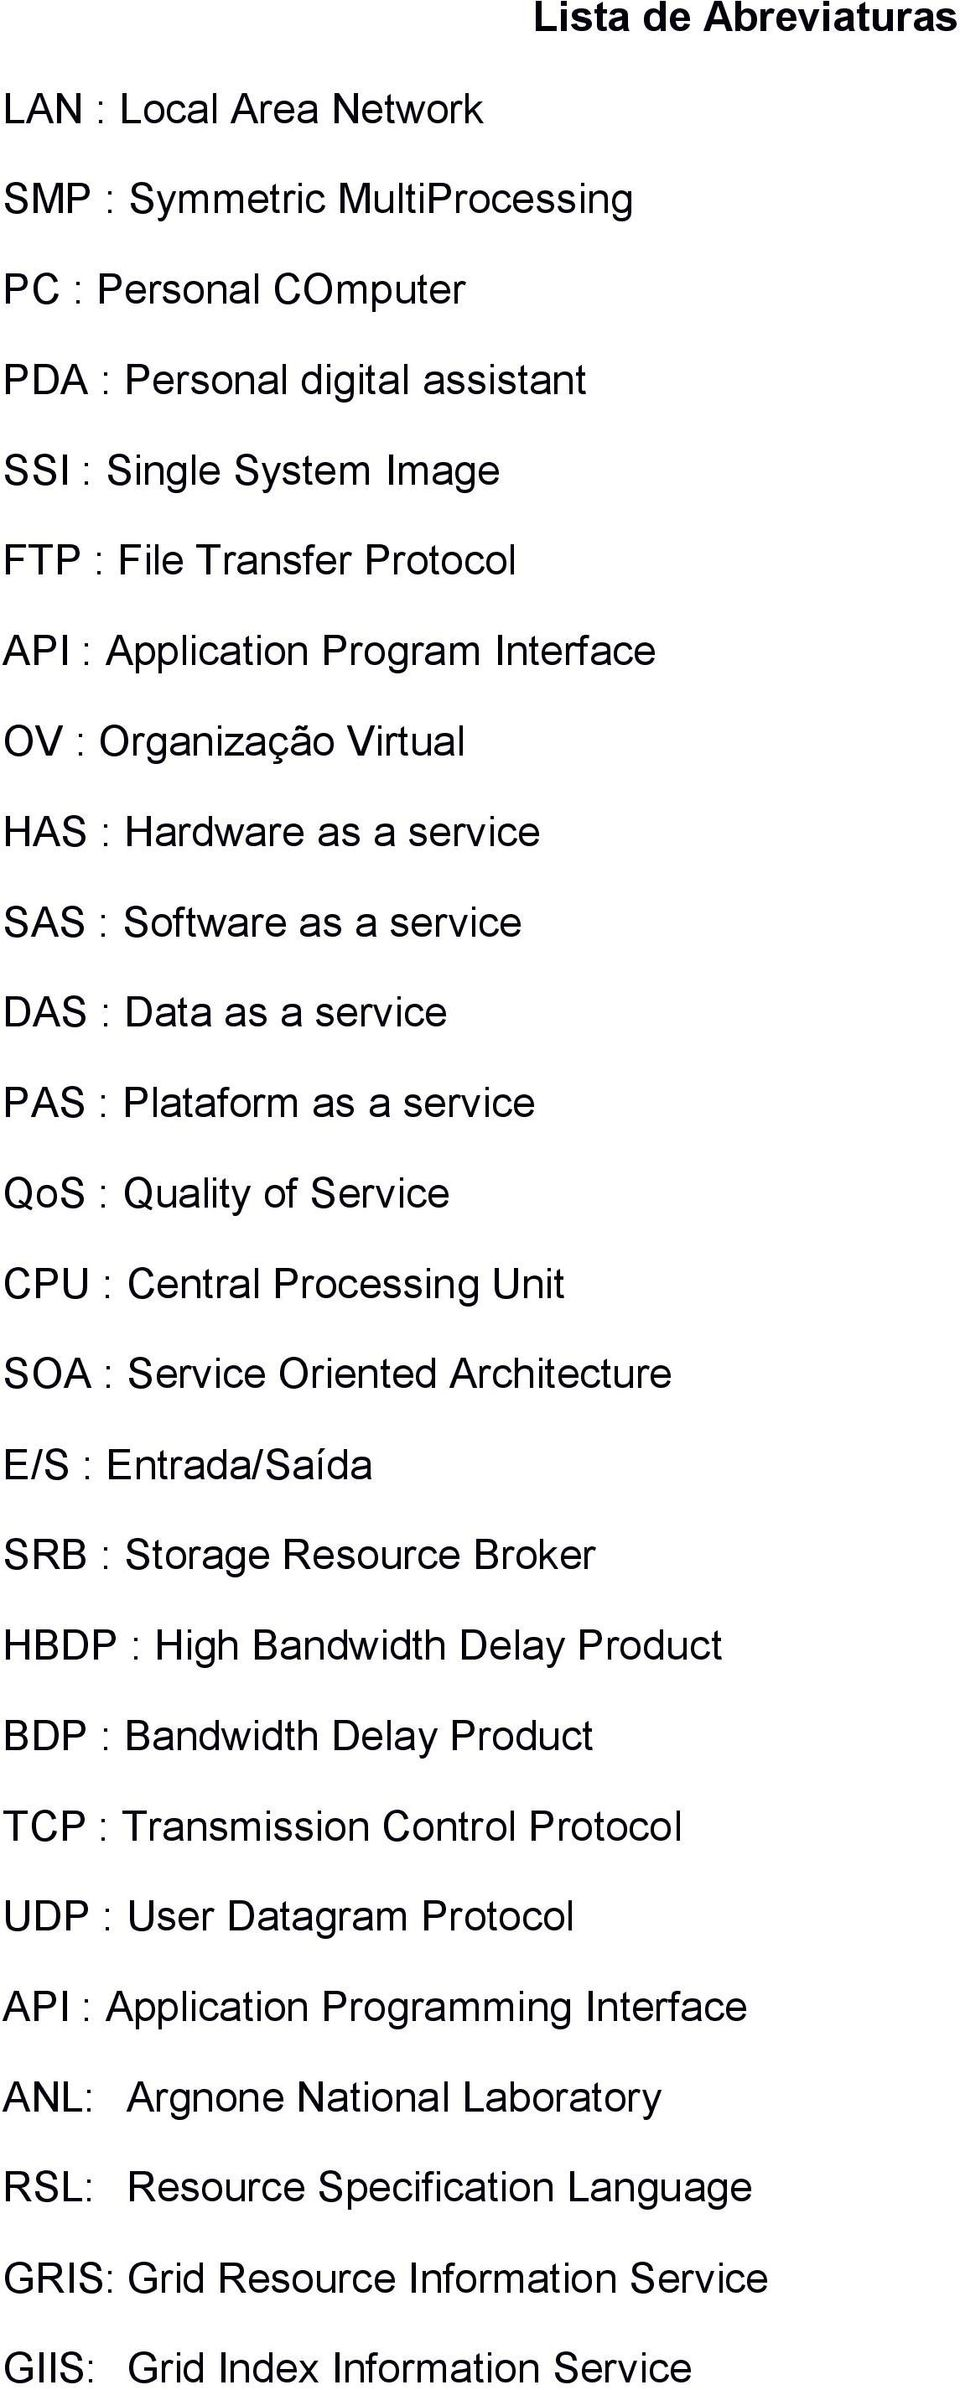 Central Processing Unit SOA : Service Oriented Architecture E/S : Entrada/Saída SRB : Storage Resource Broker HBDP : High Bandwidth Delay Product BDP : Bandwidth Delay Product TCP : Transmission